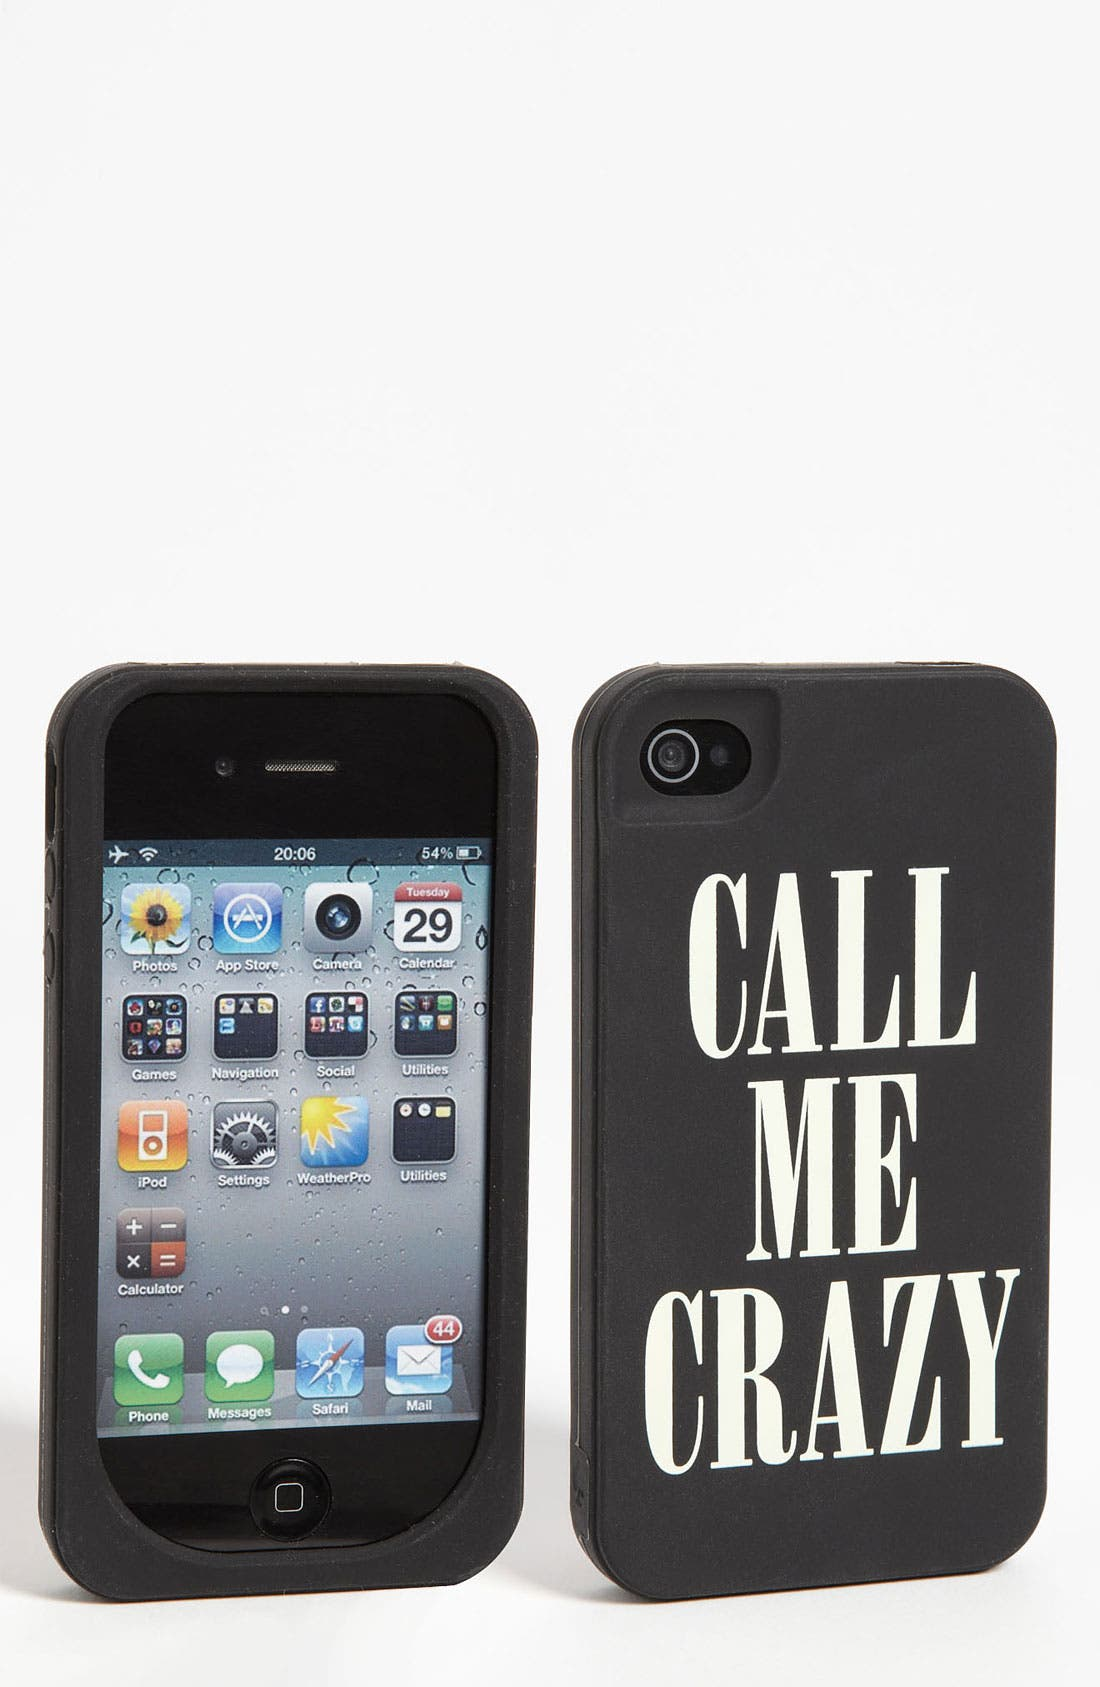 Main Image - kate spade new york 'call me crazy' iPhone 4 & 4S case